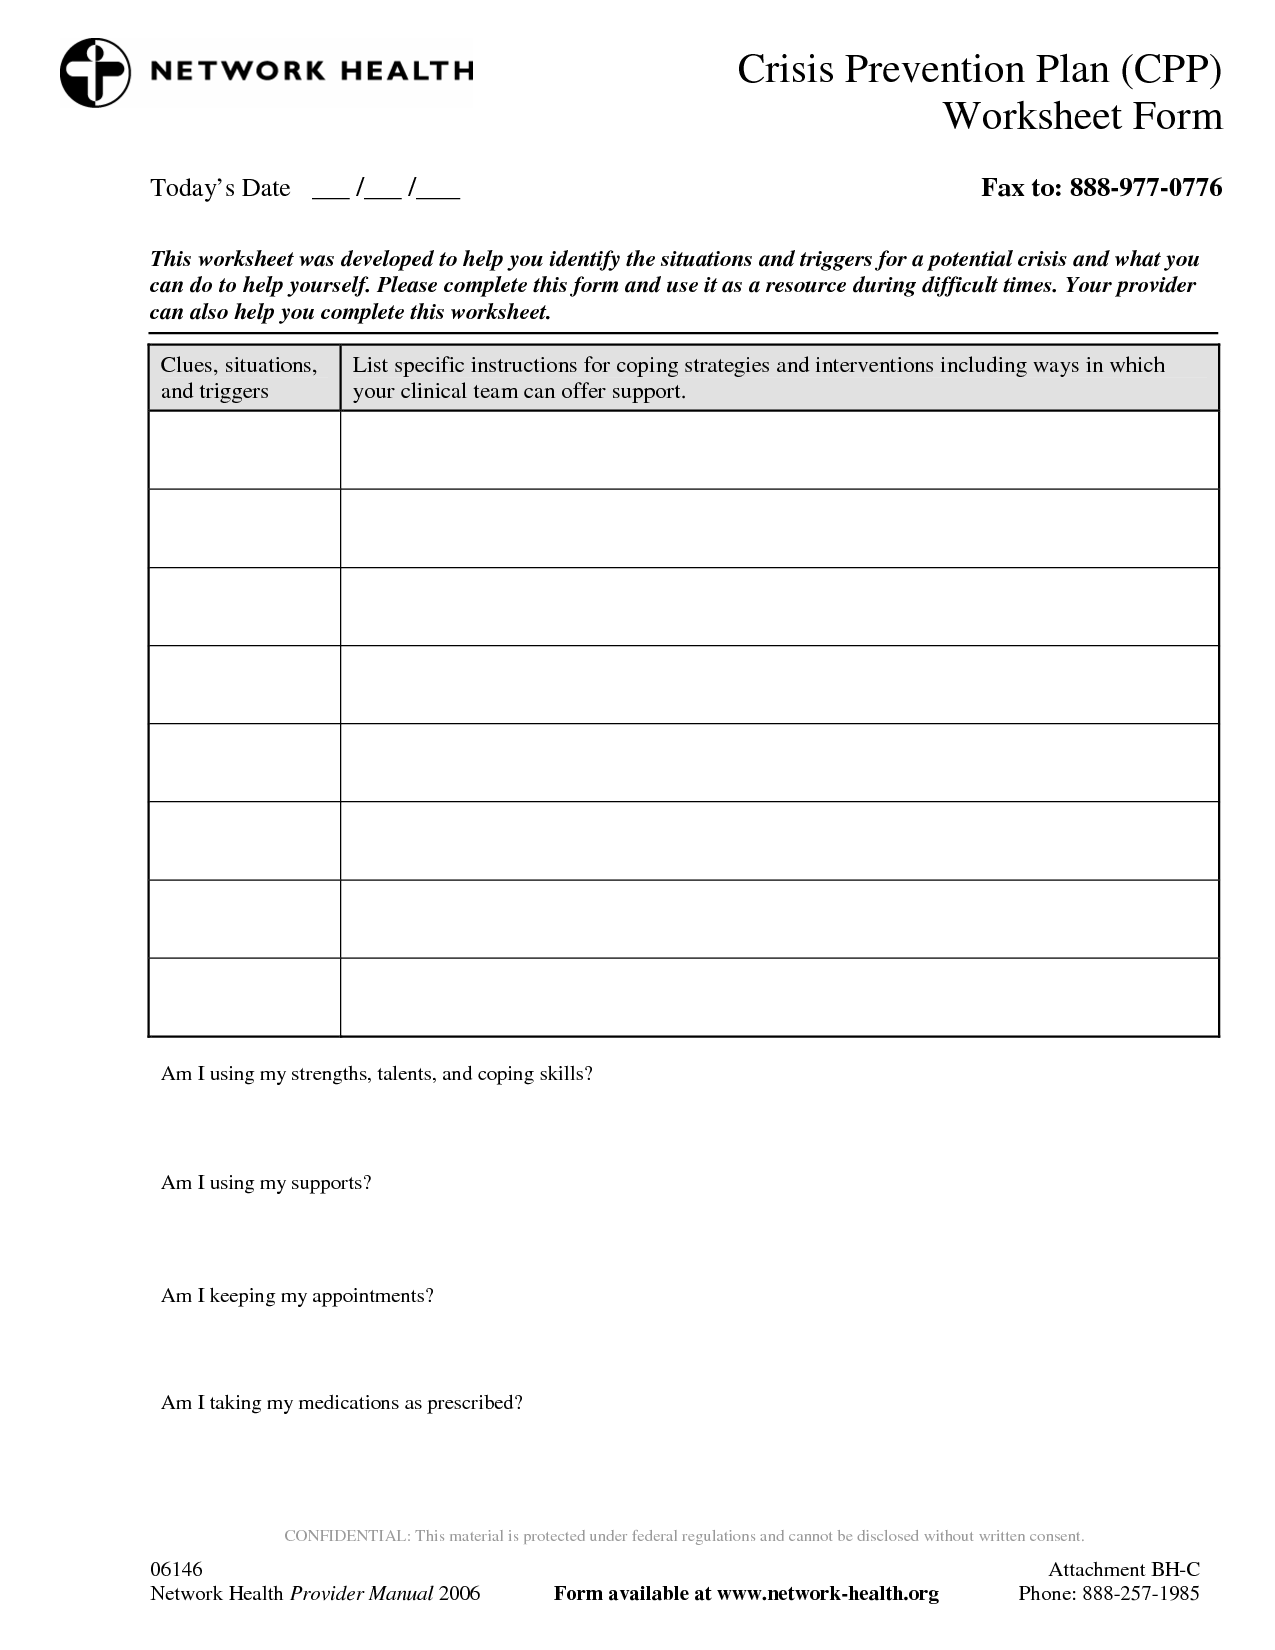 18 Best Images Of My Relapse Prevention Plan Worksheet